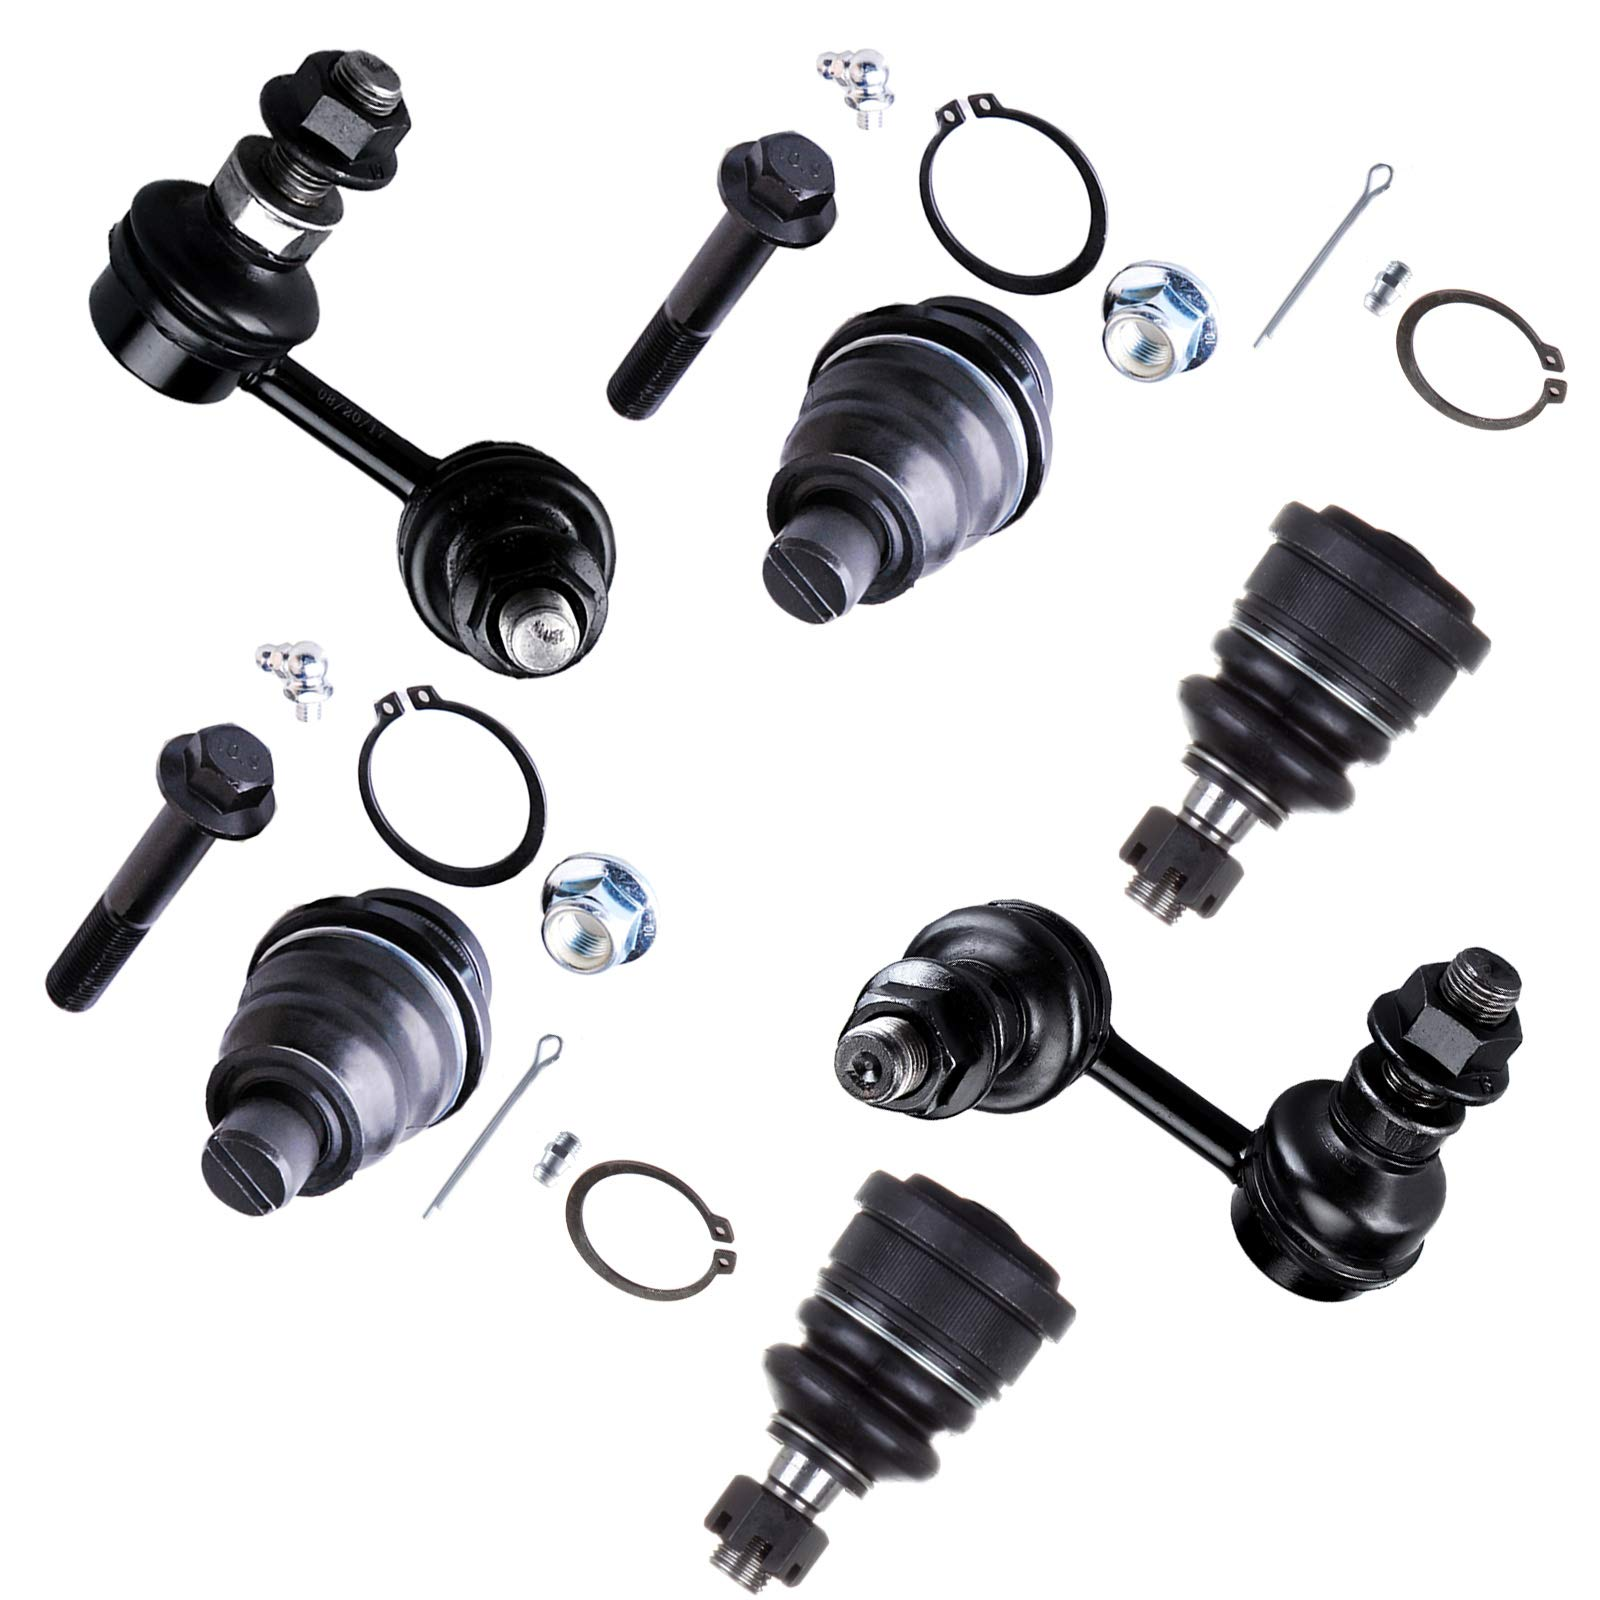 SCITOO 6pcs Suspension Kit 2 Upper 2 Lower Ball Joint 2 Front Sway Bar End Link fit 2005-2013 Nissan Frontier 2WD 2005-2012 Nissan Pathfinder 2WD 2005-2013 Nissan Xterra 2WD K80647